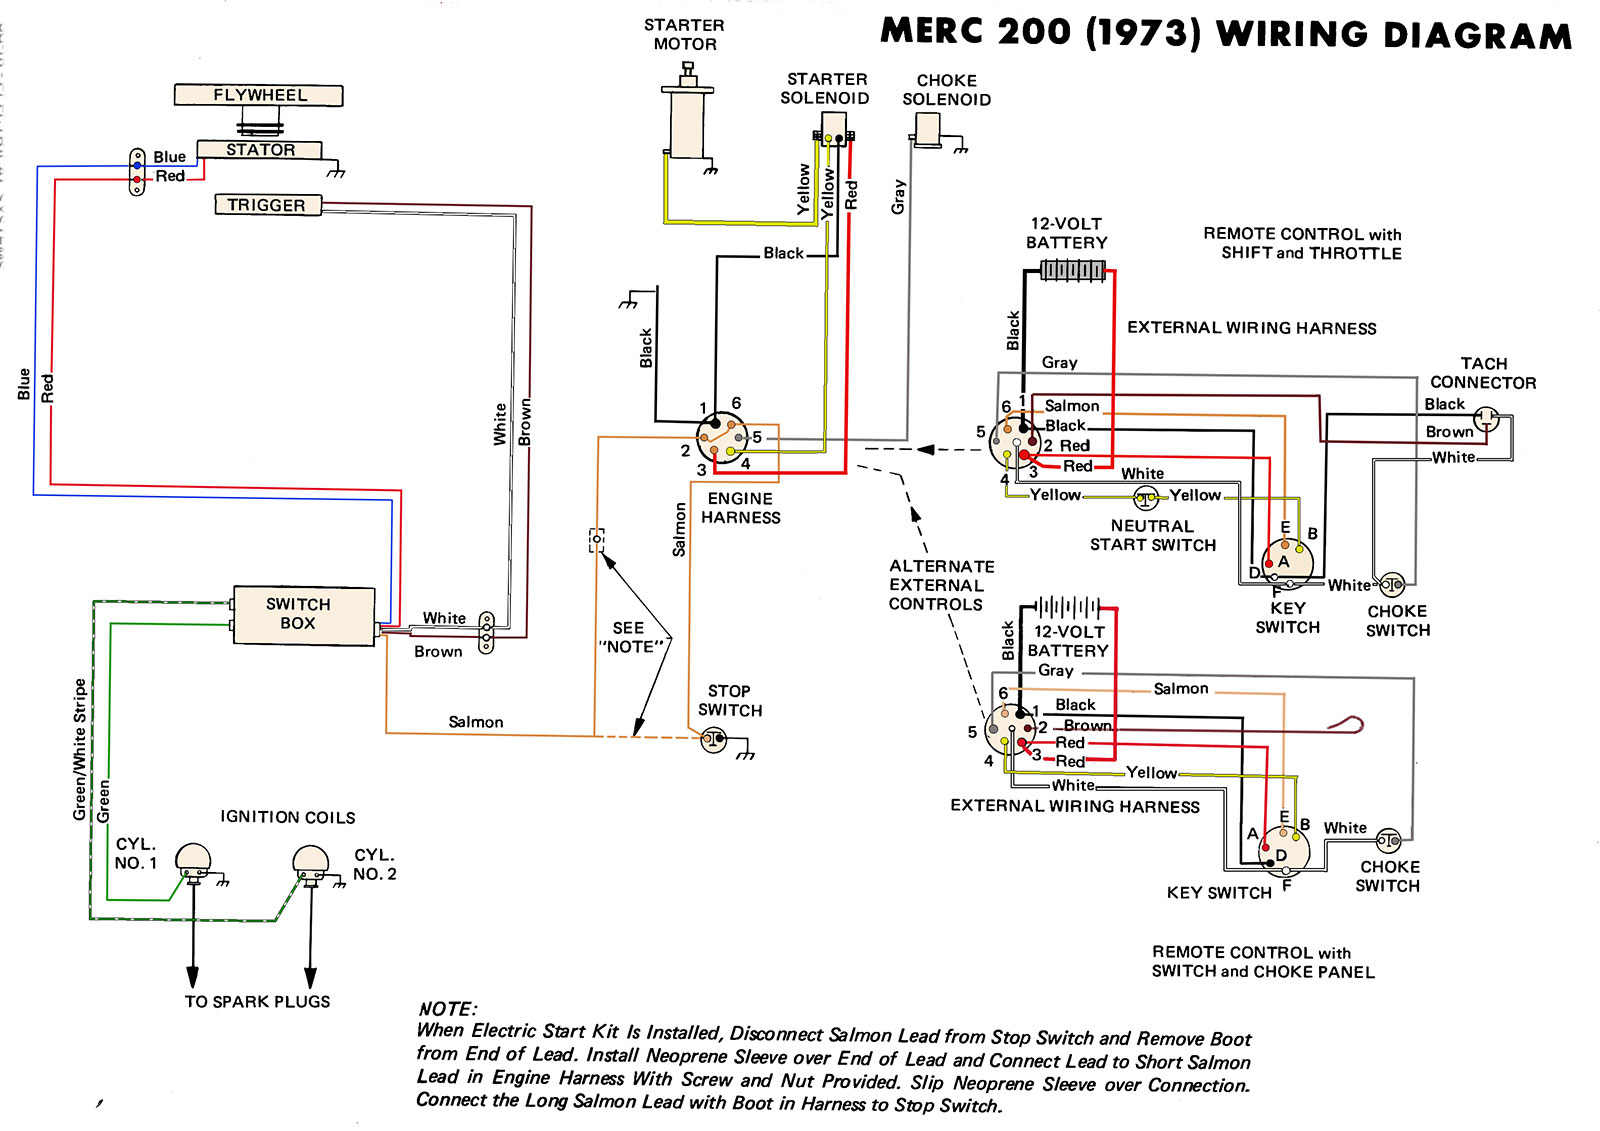 1995 mercury outboard wiring diagram schematic wiring diagrams mon1995 mercury outboard wiring diagram schematic wiring diagram detailed 1995 mercury outboard wiring diagram schematic